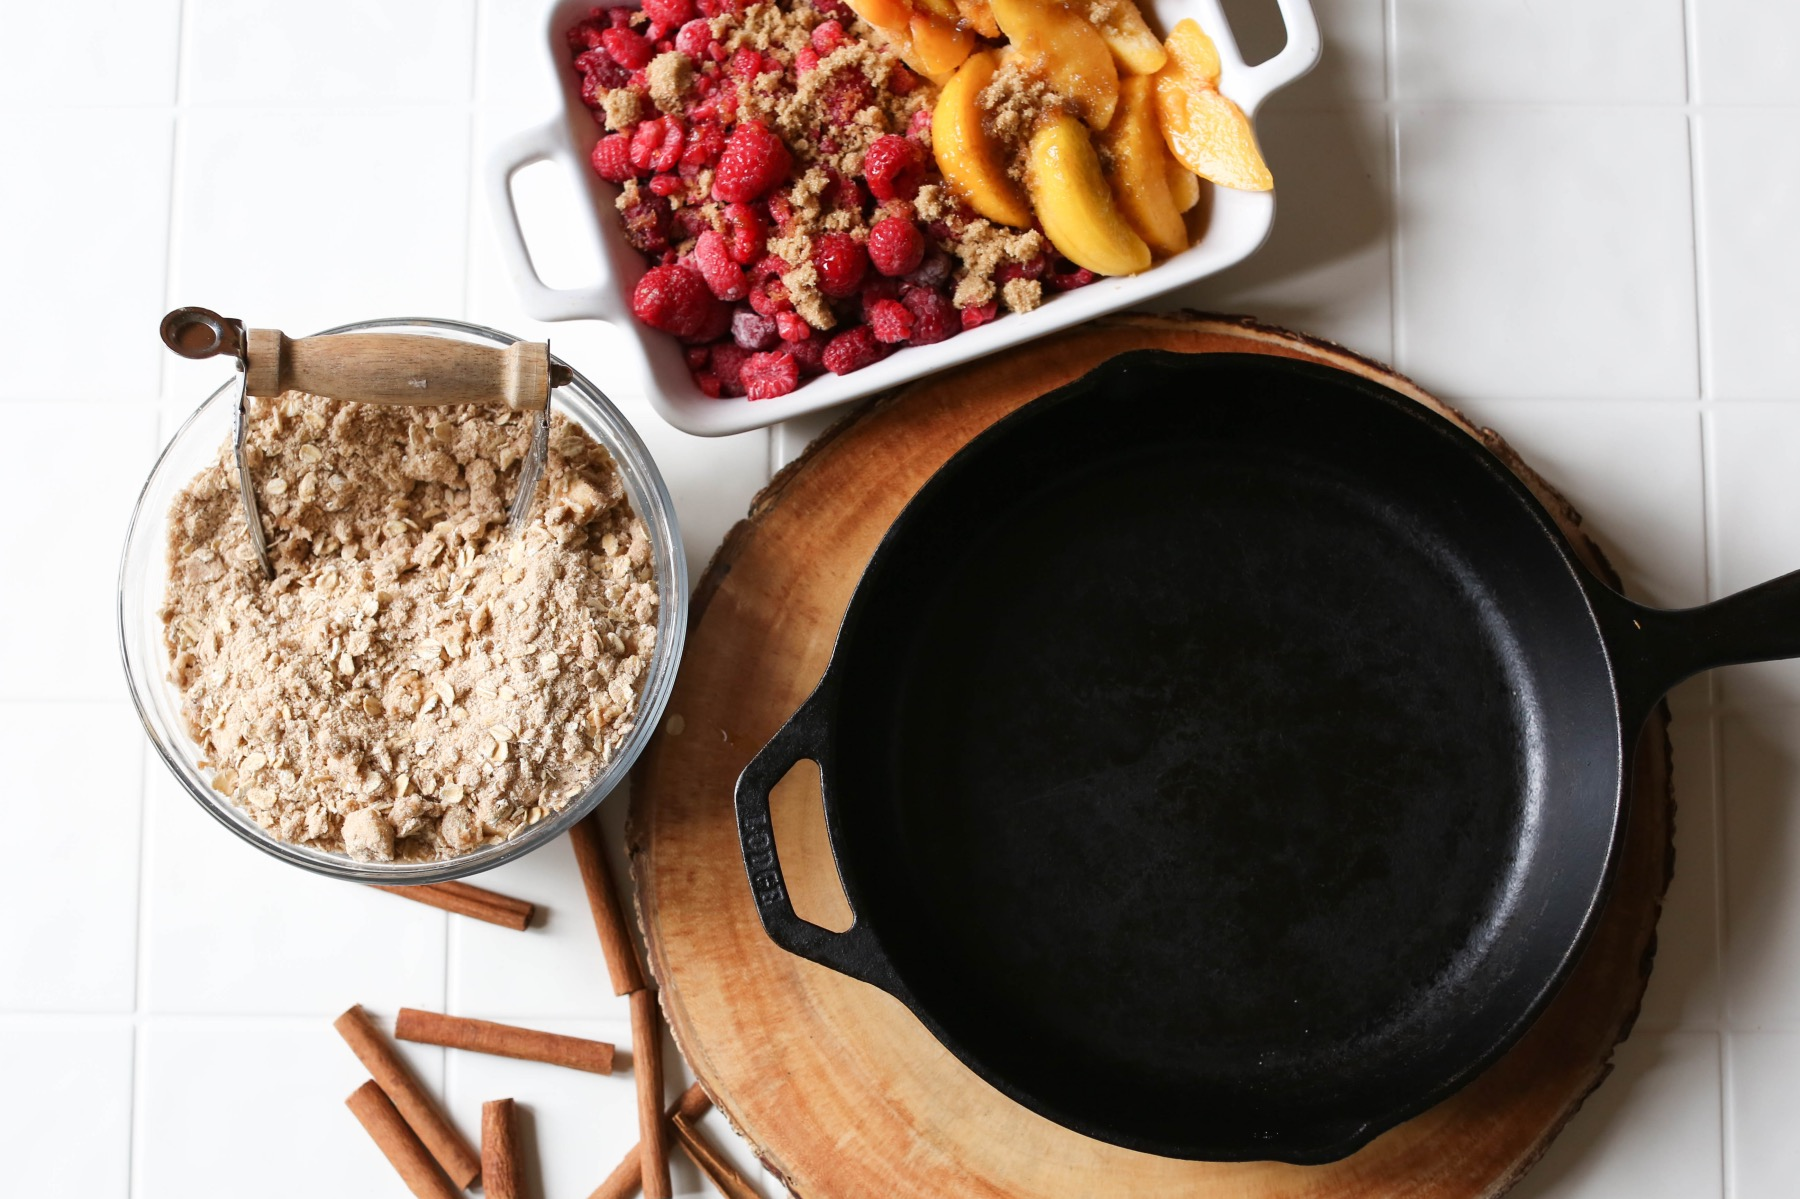 layering the fruit into the cast iron skillet crumble dessert recipe